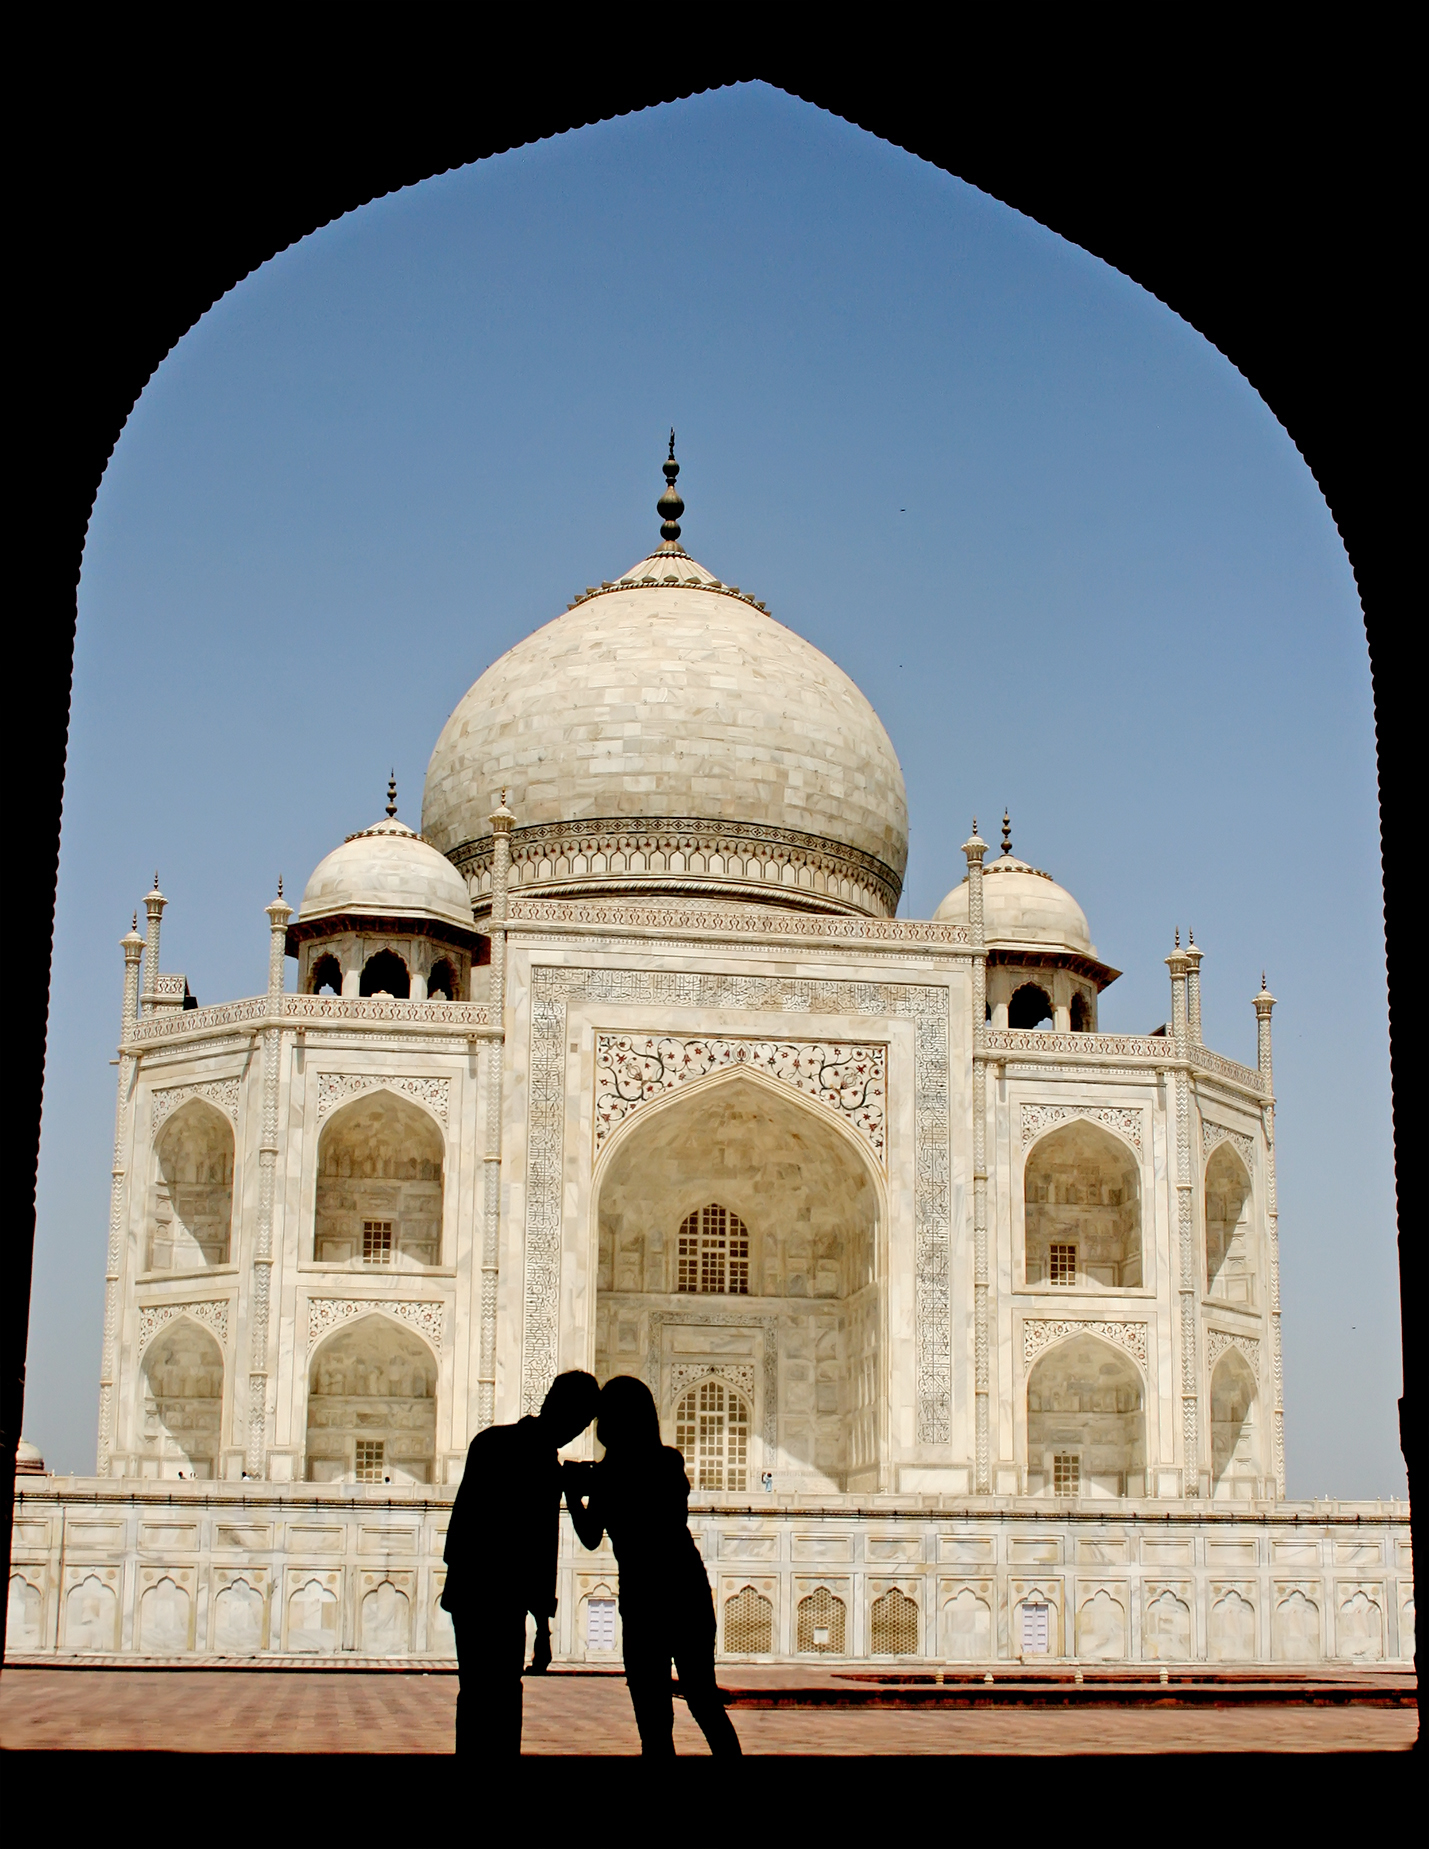 FileTaj Mahal ppl silhouettejpg  Wikimedia Commons